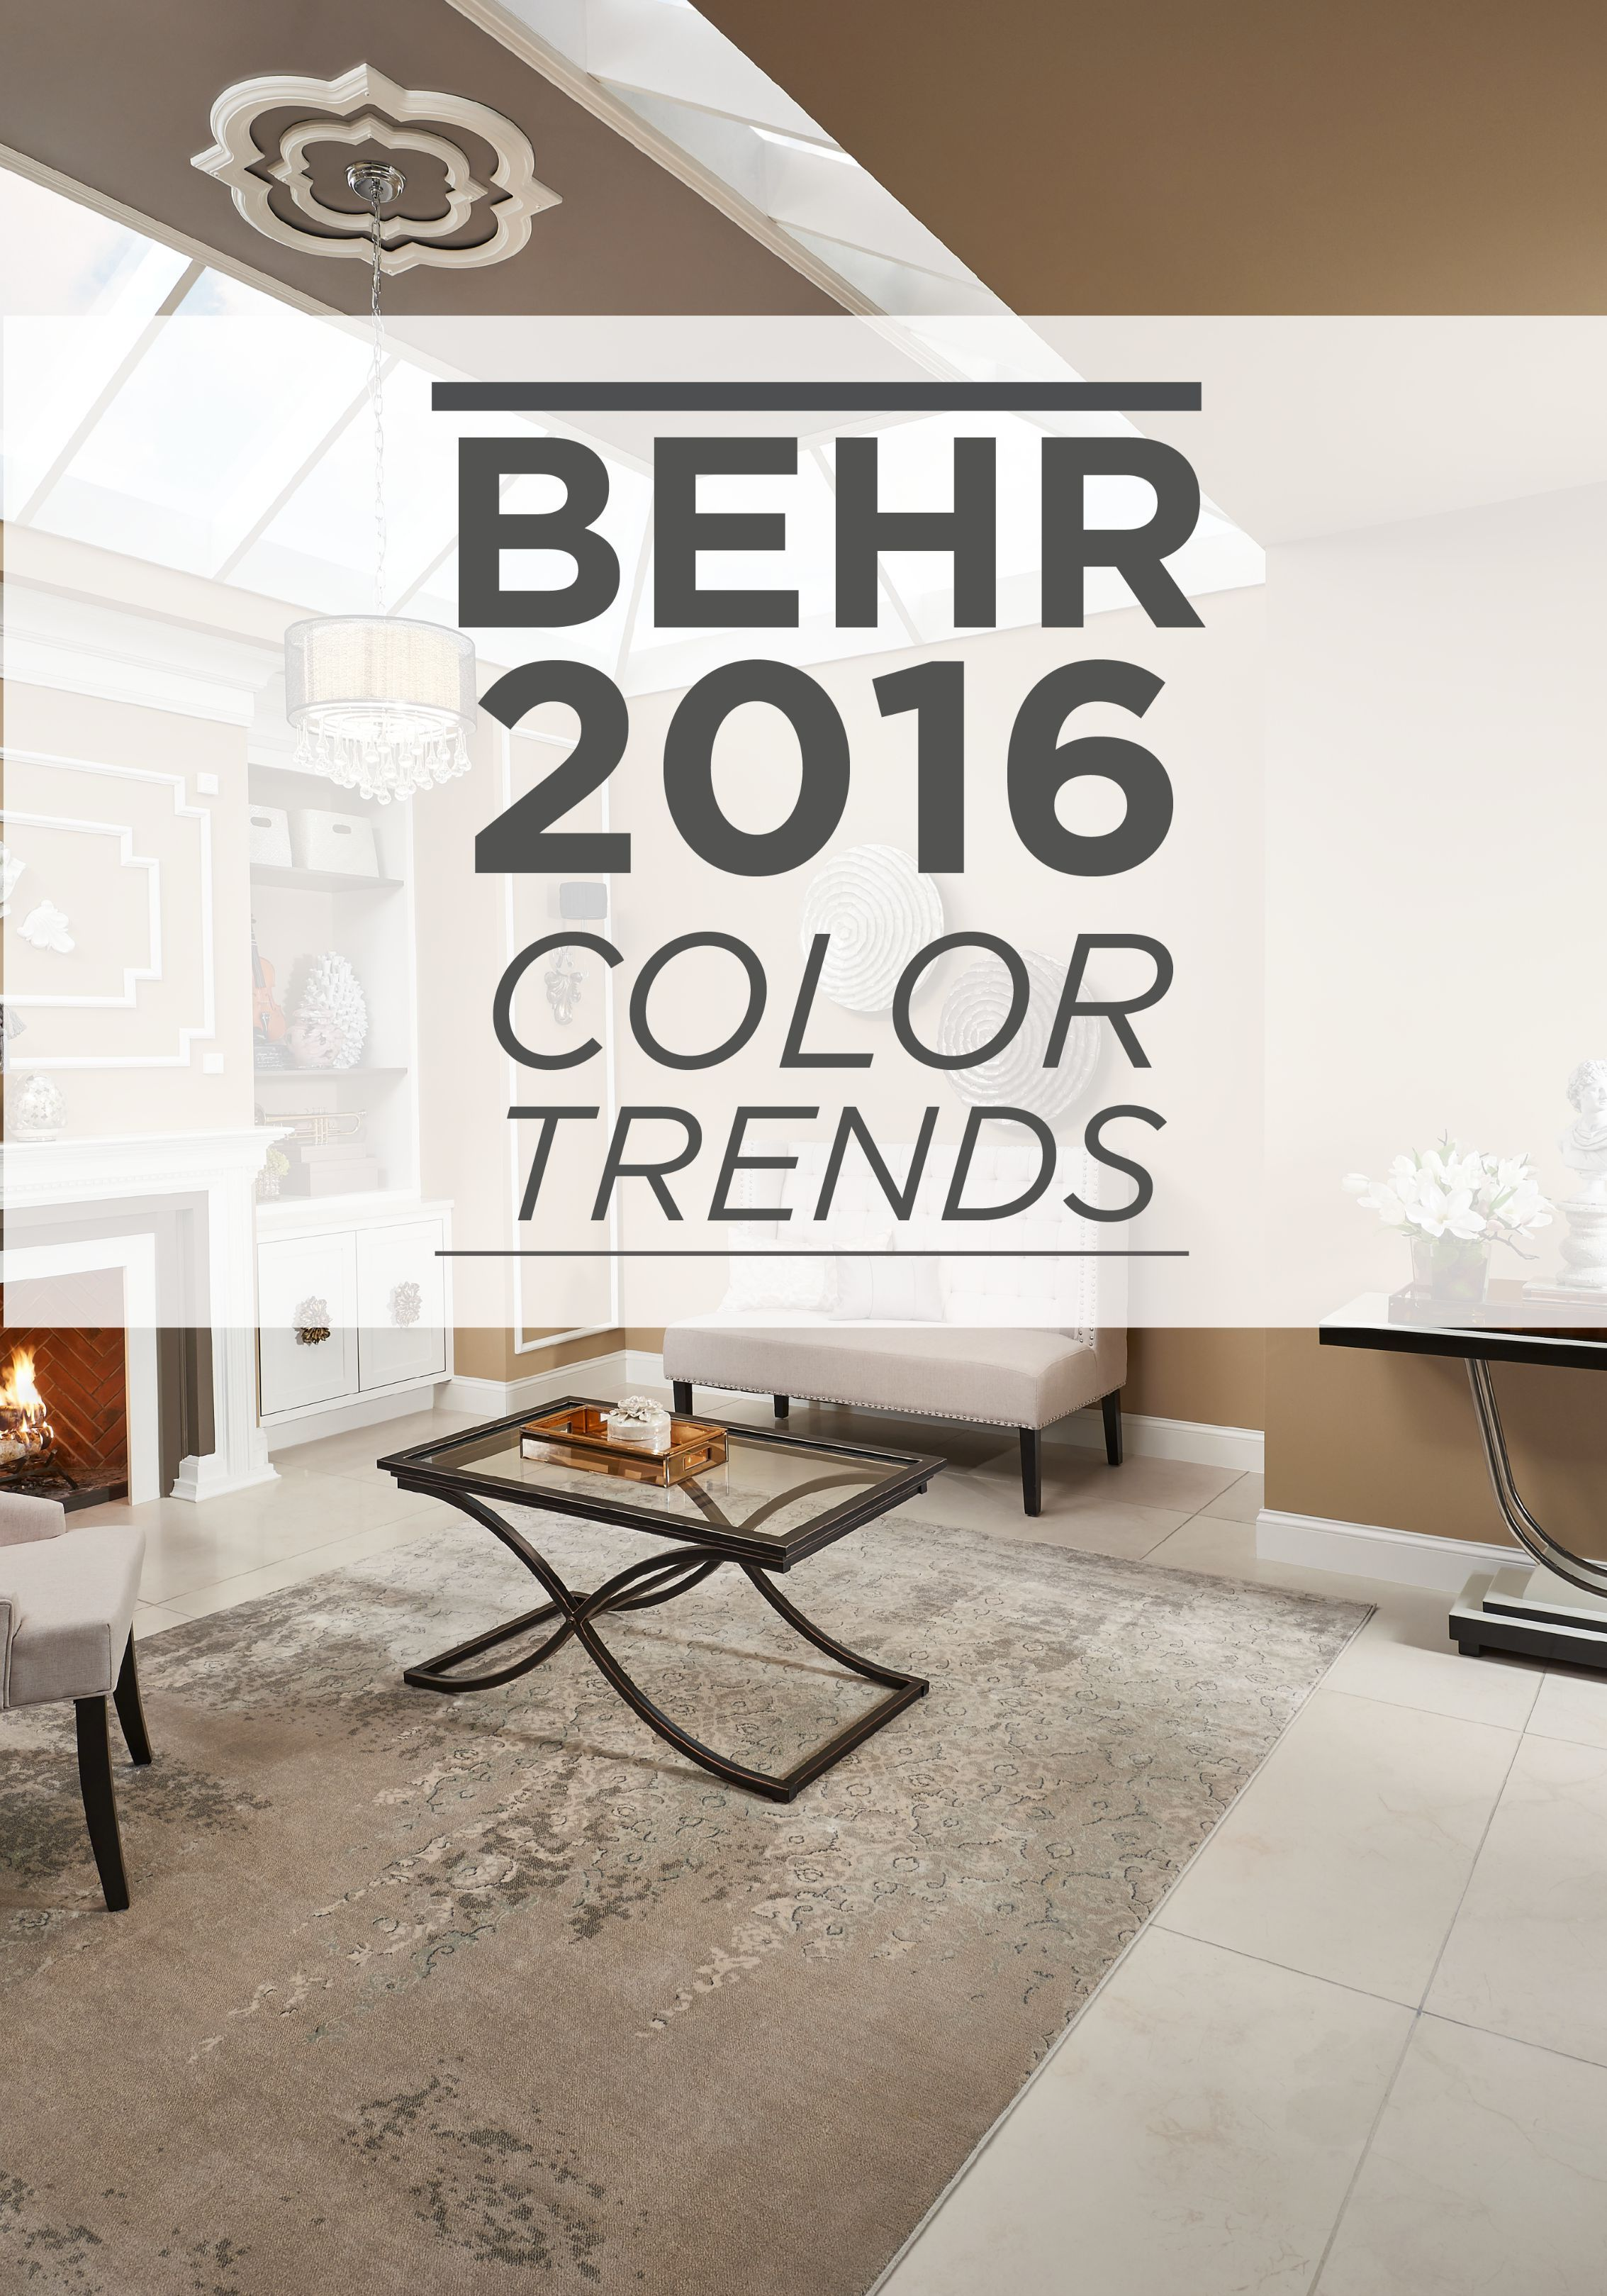 see behr trends color foyer every behrs interior gorgeous paint colors comfortable currents